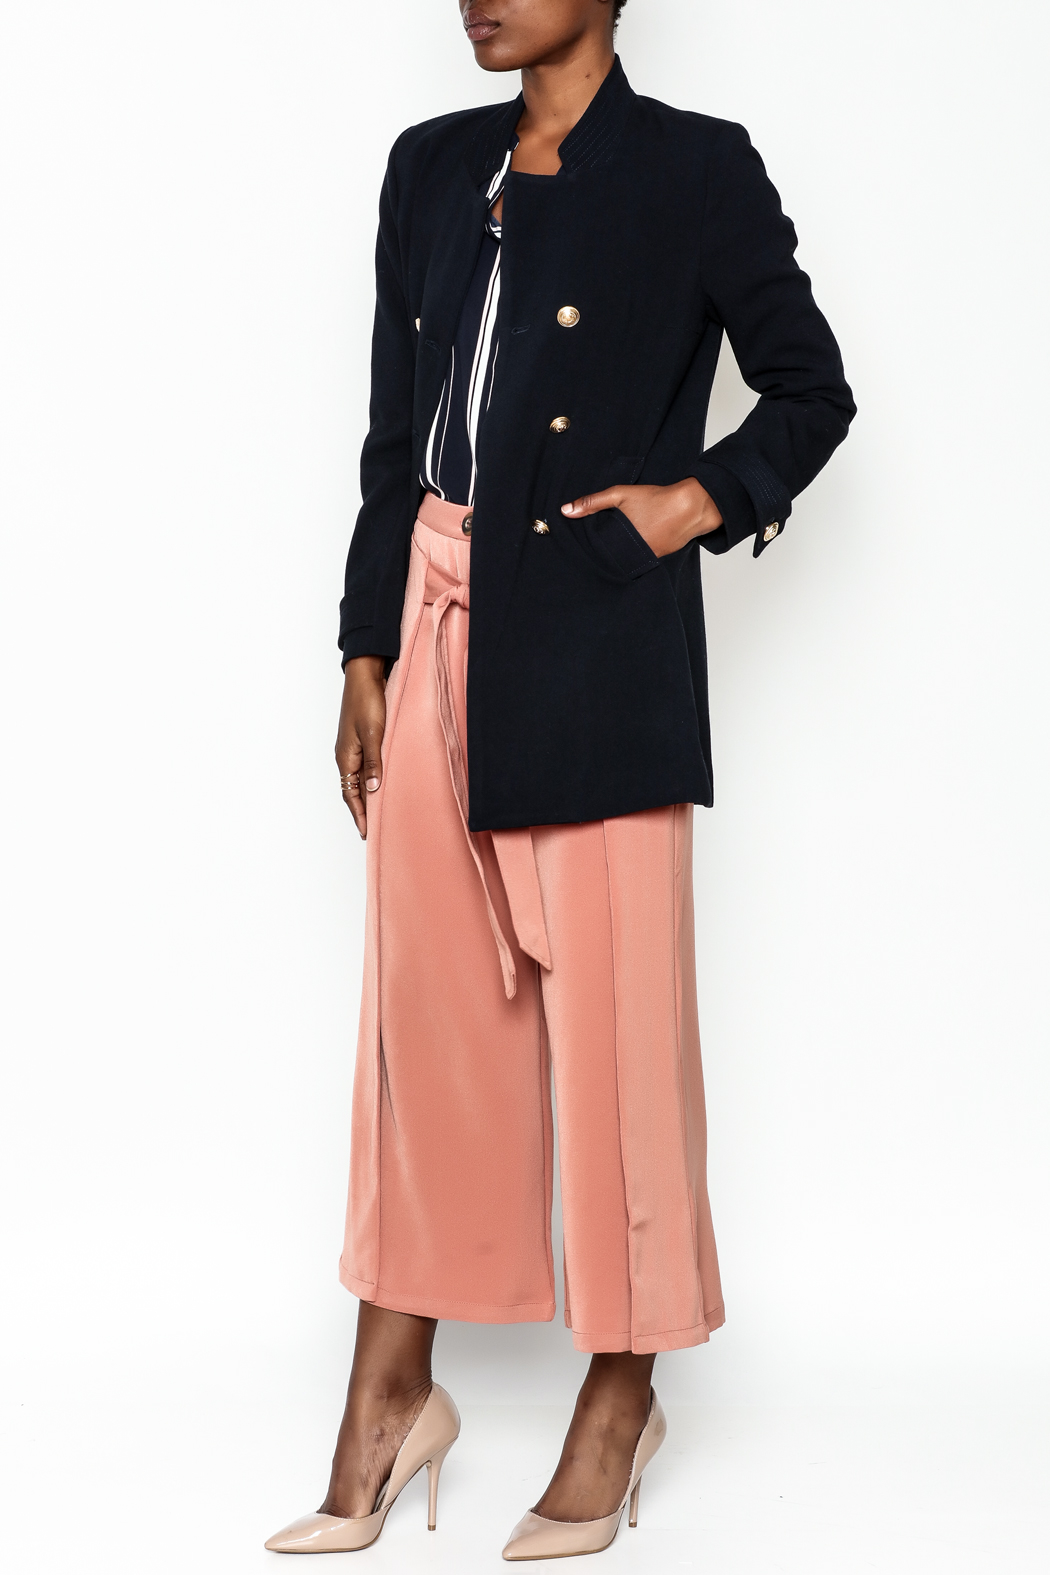 WREN & WILLA Gold Button Peacoat - Side Cropped Image